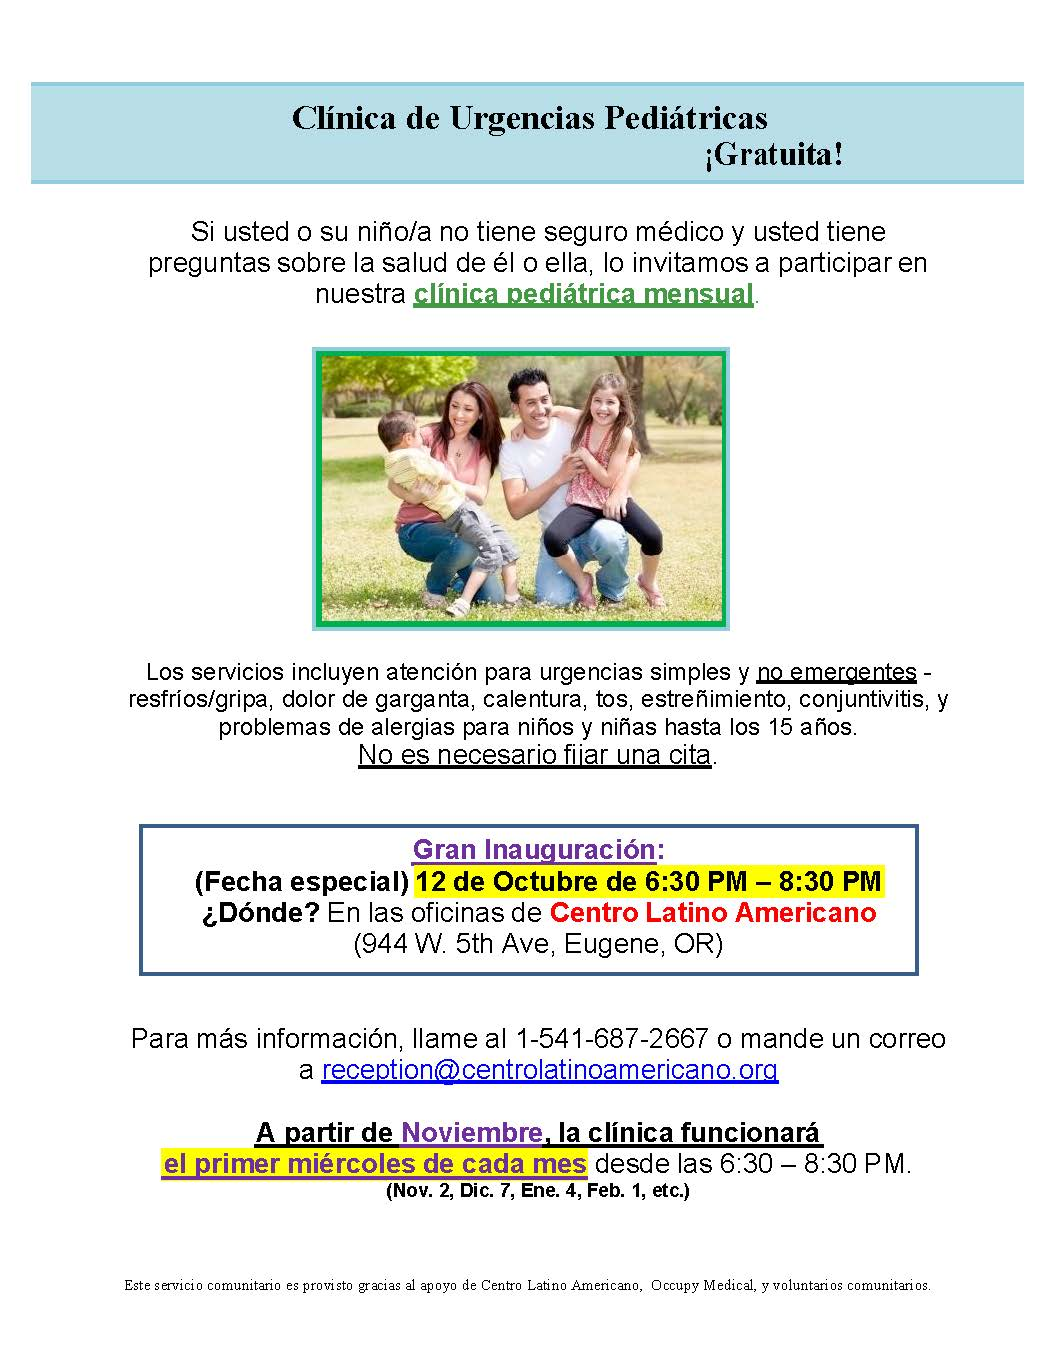 20161012-free-clinic-flyer-spanish-ver-3-final